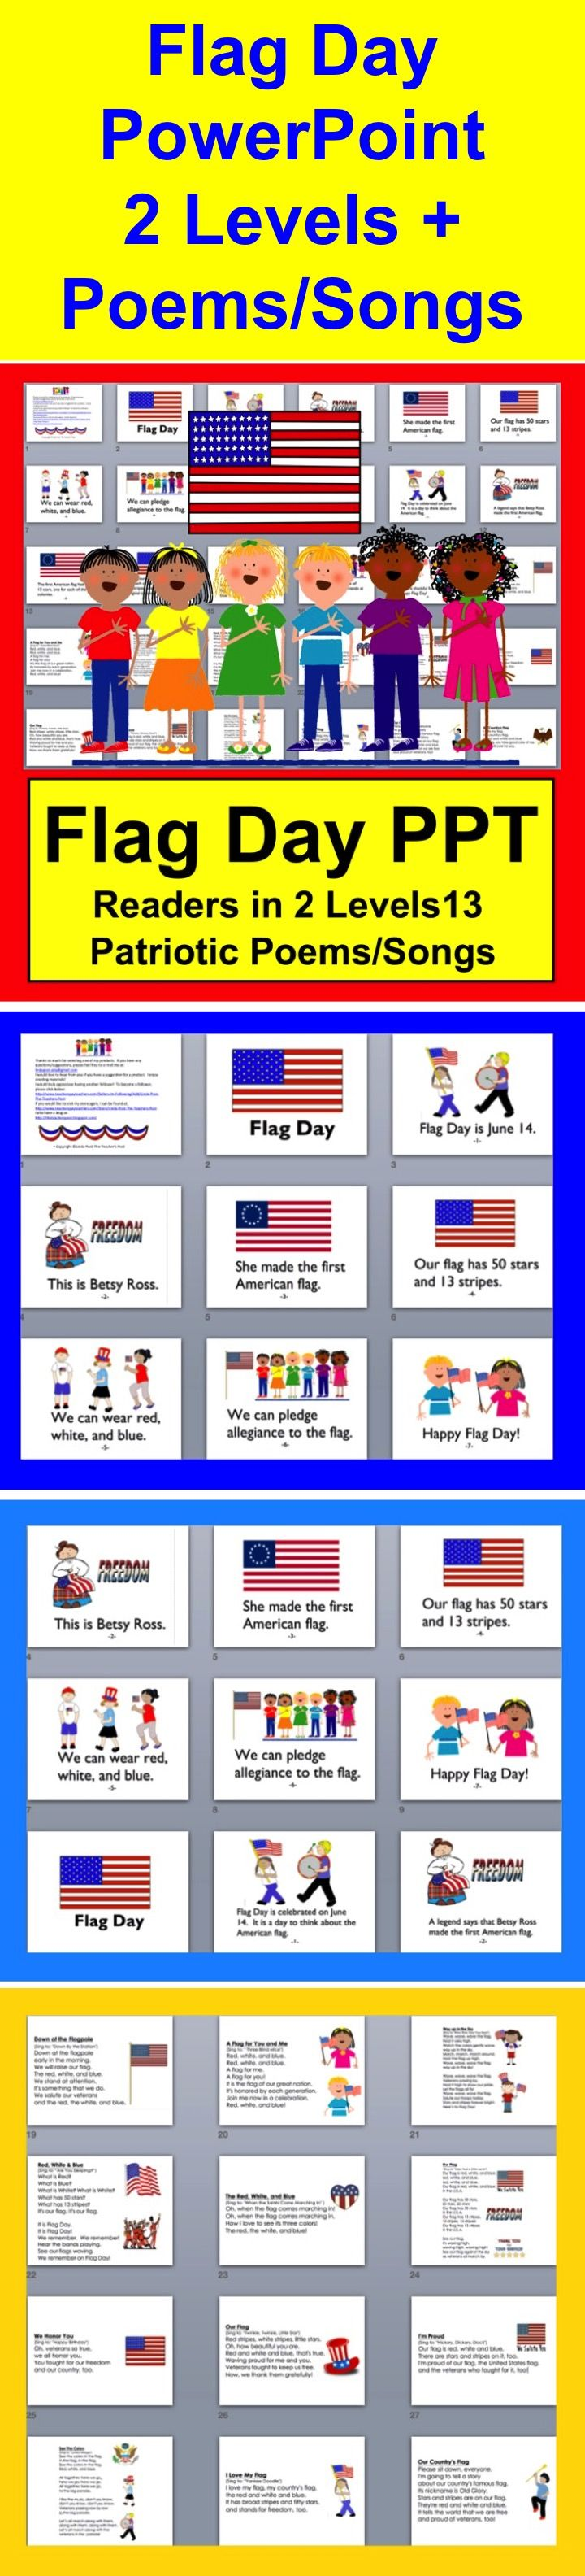 Differentiate with 2 levels, complete with transitions and a few sound effects...  ★ 29 Flag Day Slides – 2 Reading Levels   ★ 13 Flag Day Poems/Songs, some about Flag Day and some about the flag and patriotism  ★ Just show those you like.  ★ Flag Day Poems can be sung to familiar tunes, or chant.